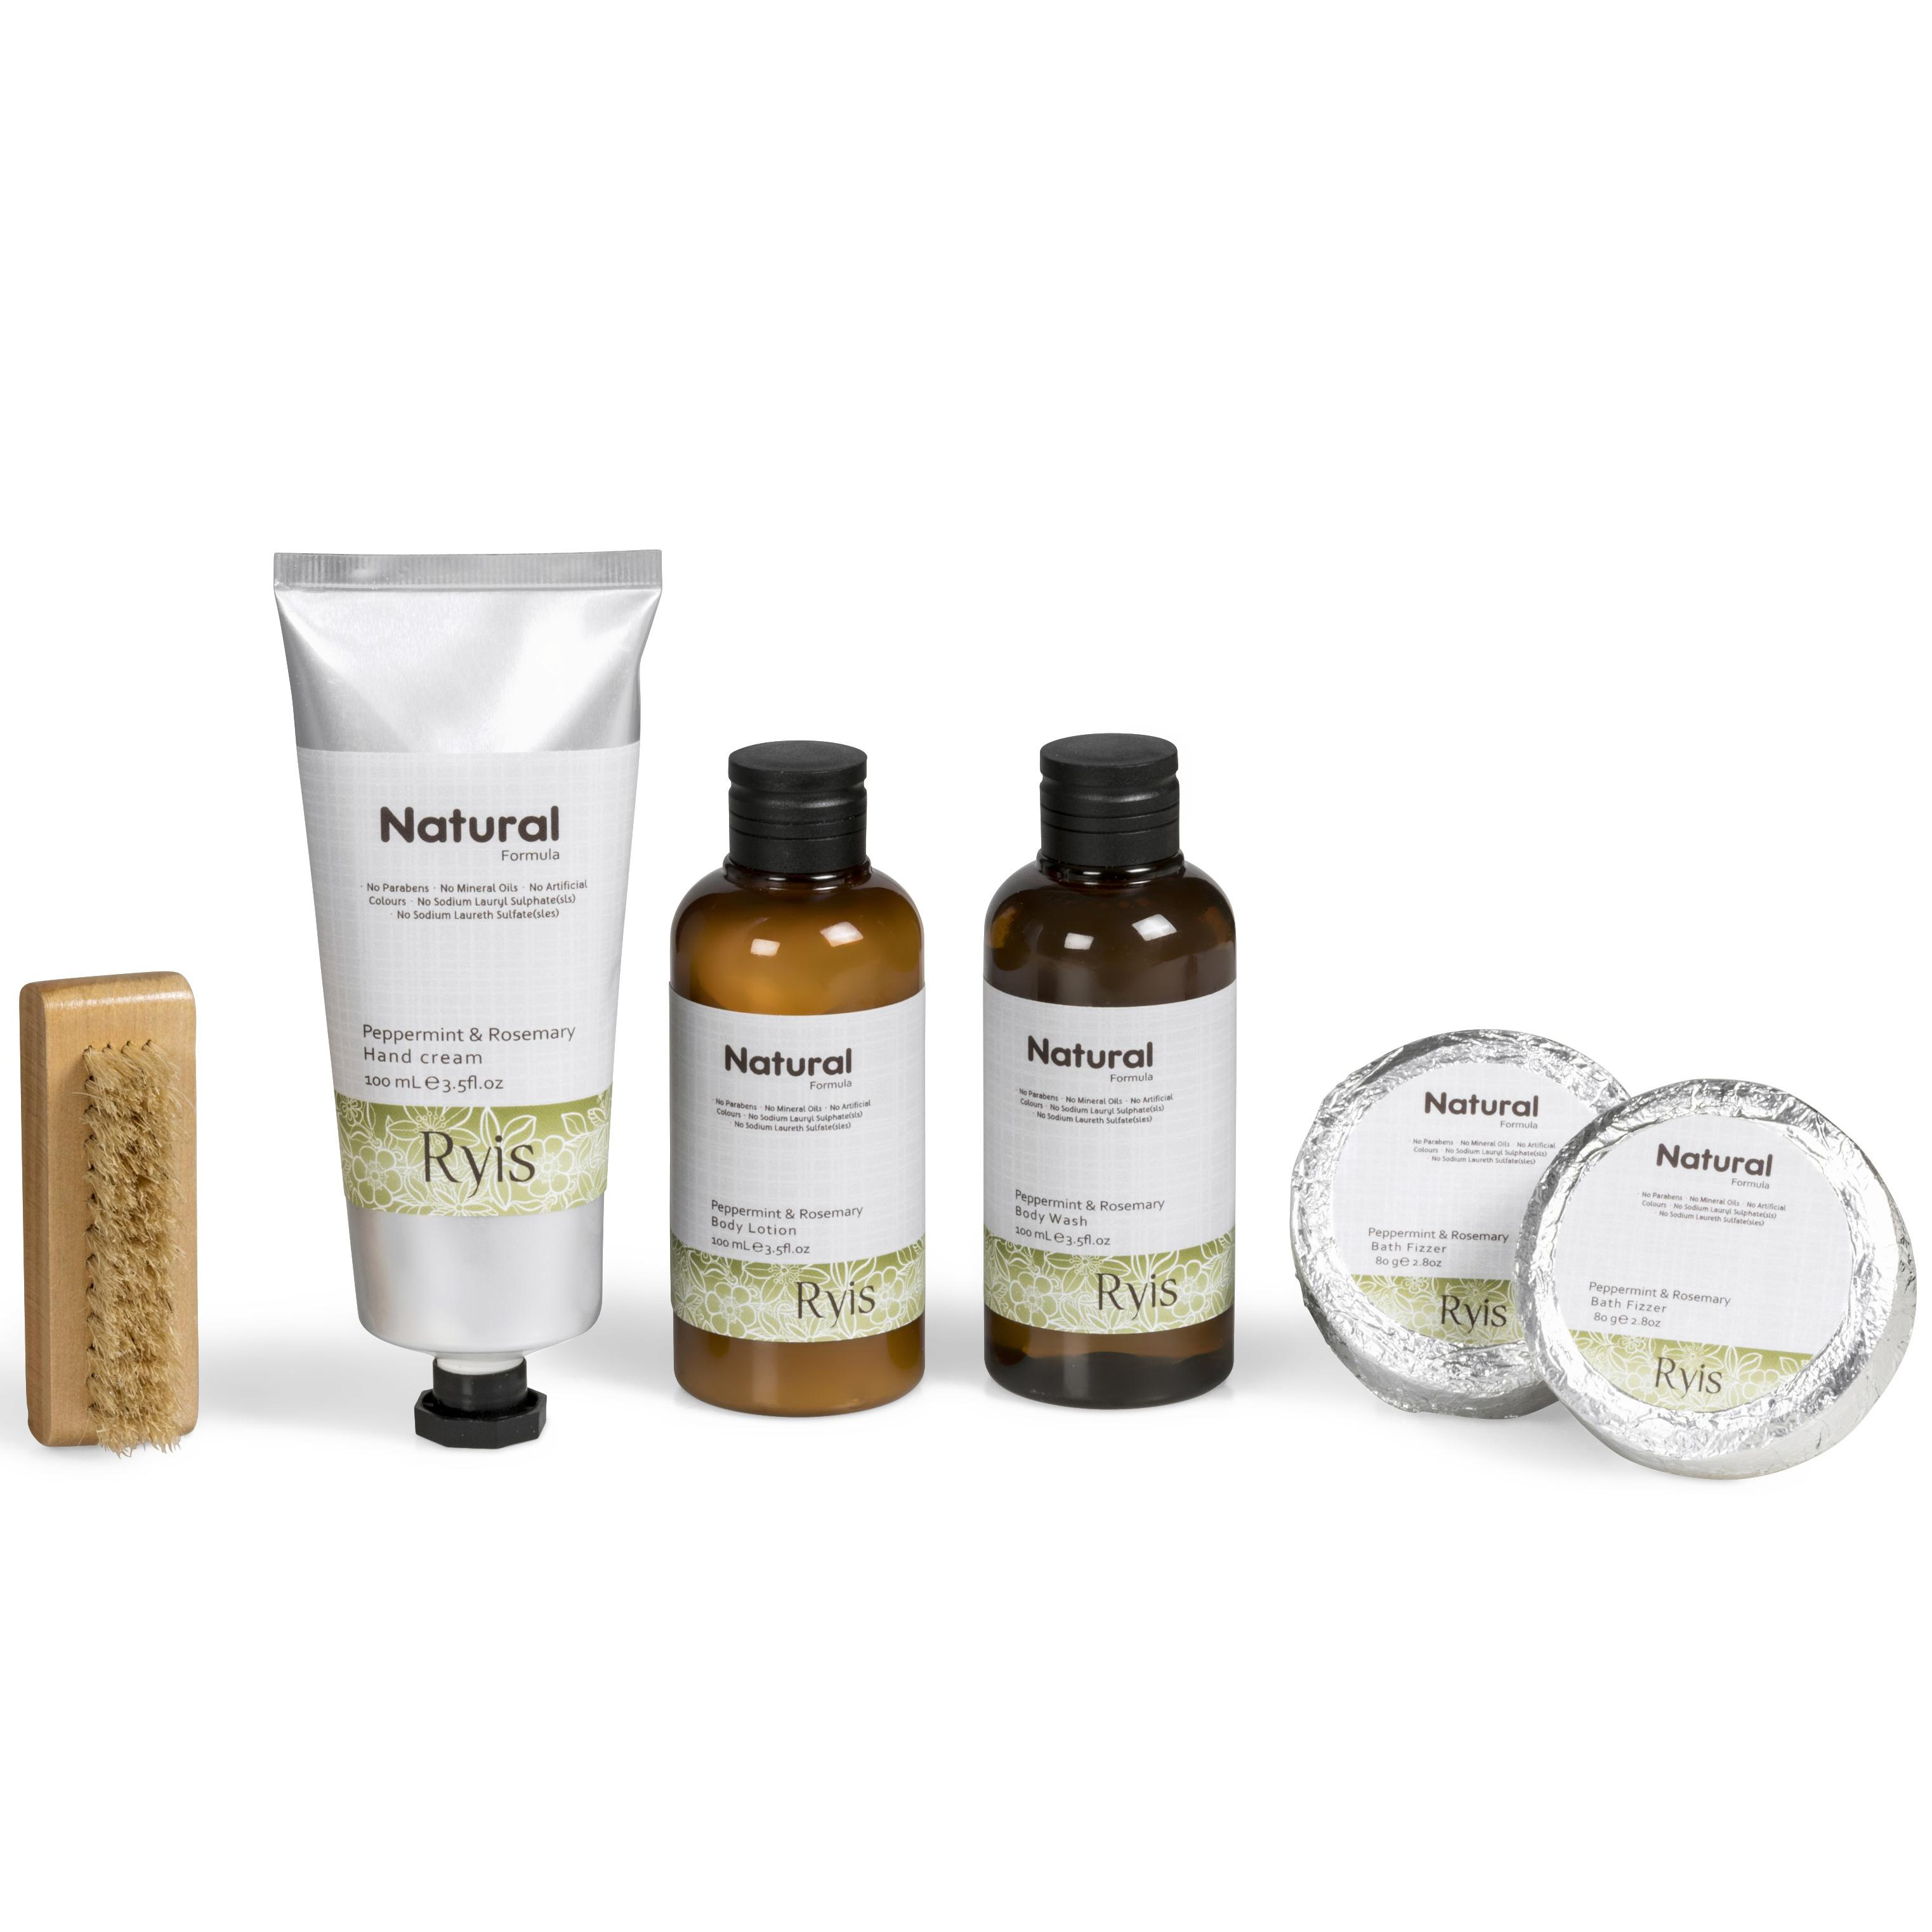 Giftsets | Ryis Peppermint & Rosemary Bath Gift Set - 1